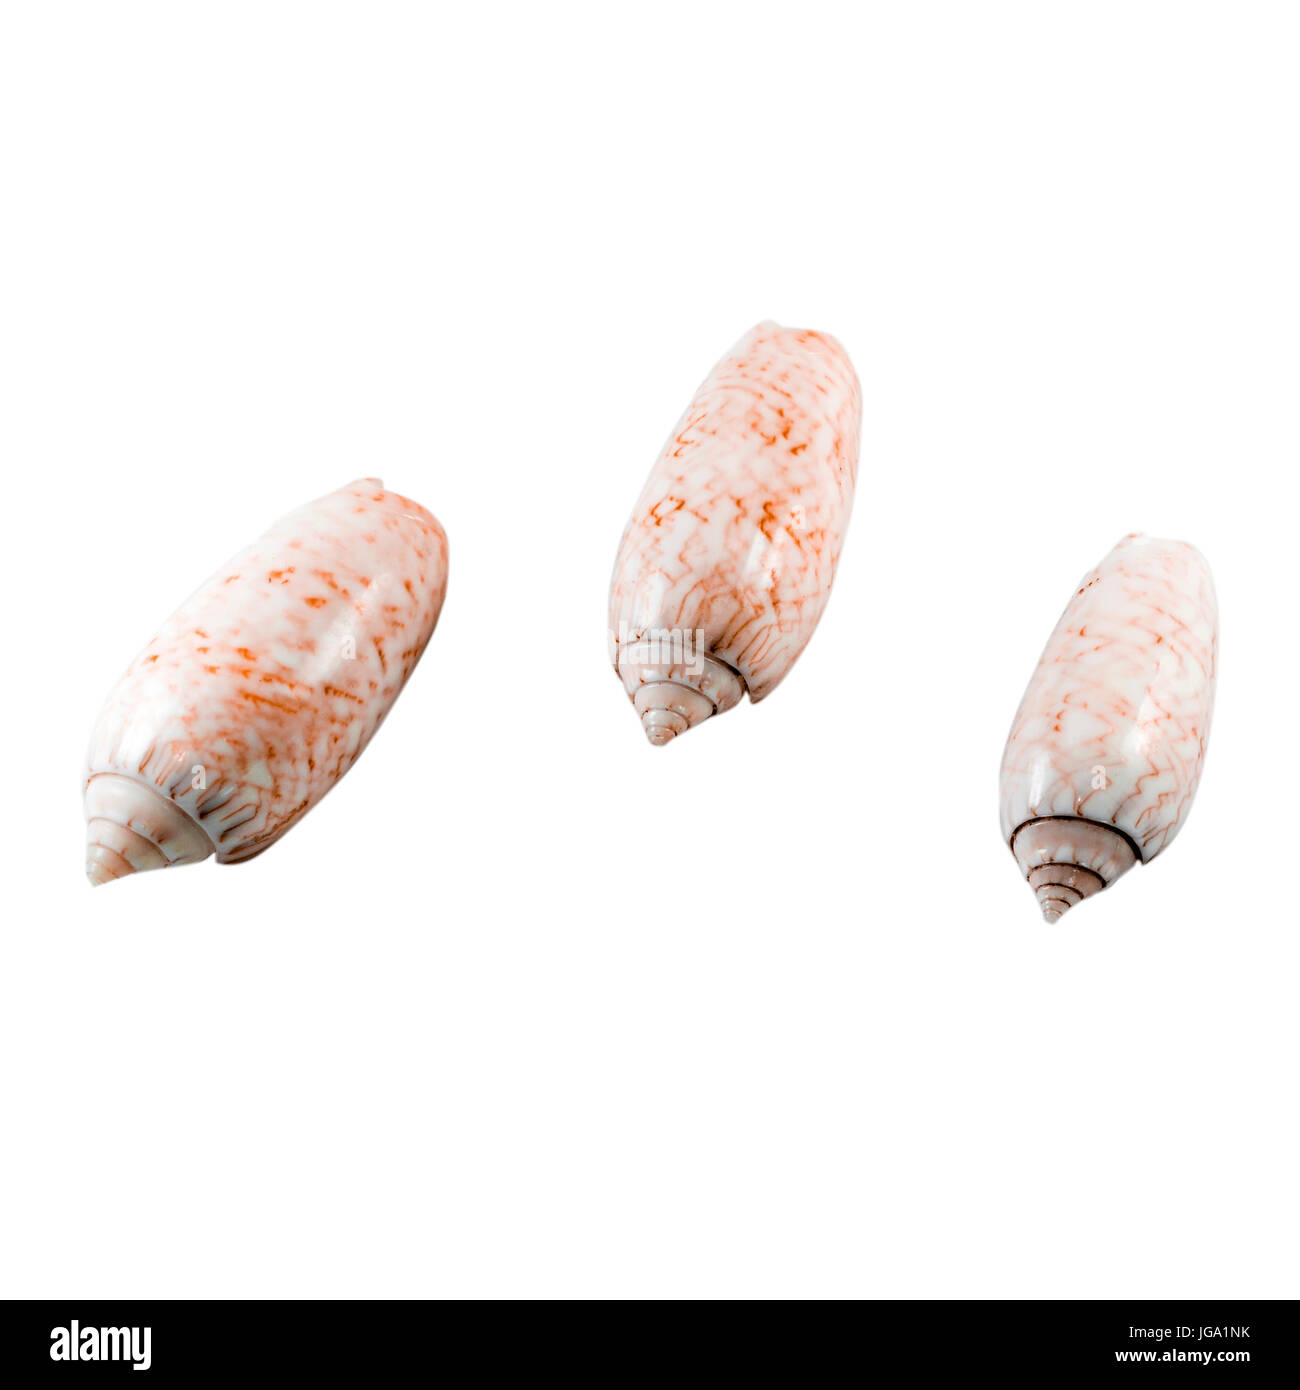 Beautiful sea shell,conus nussatella, isolated on white background view from the top .For posters, sites, business - Stock Image